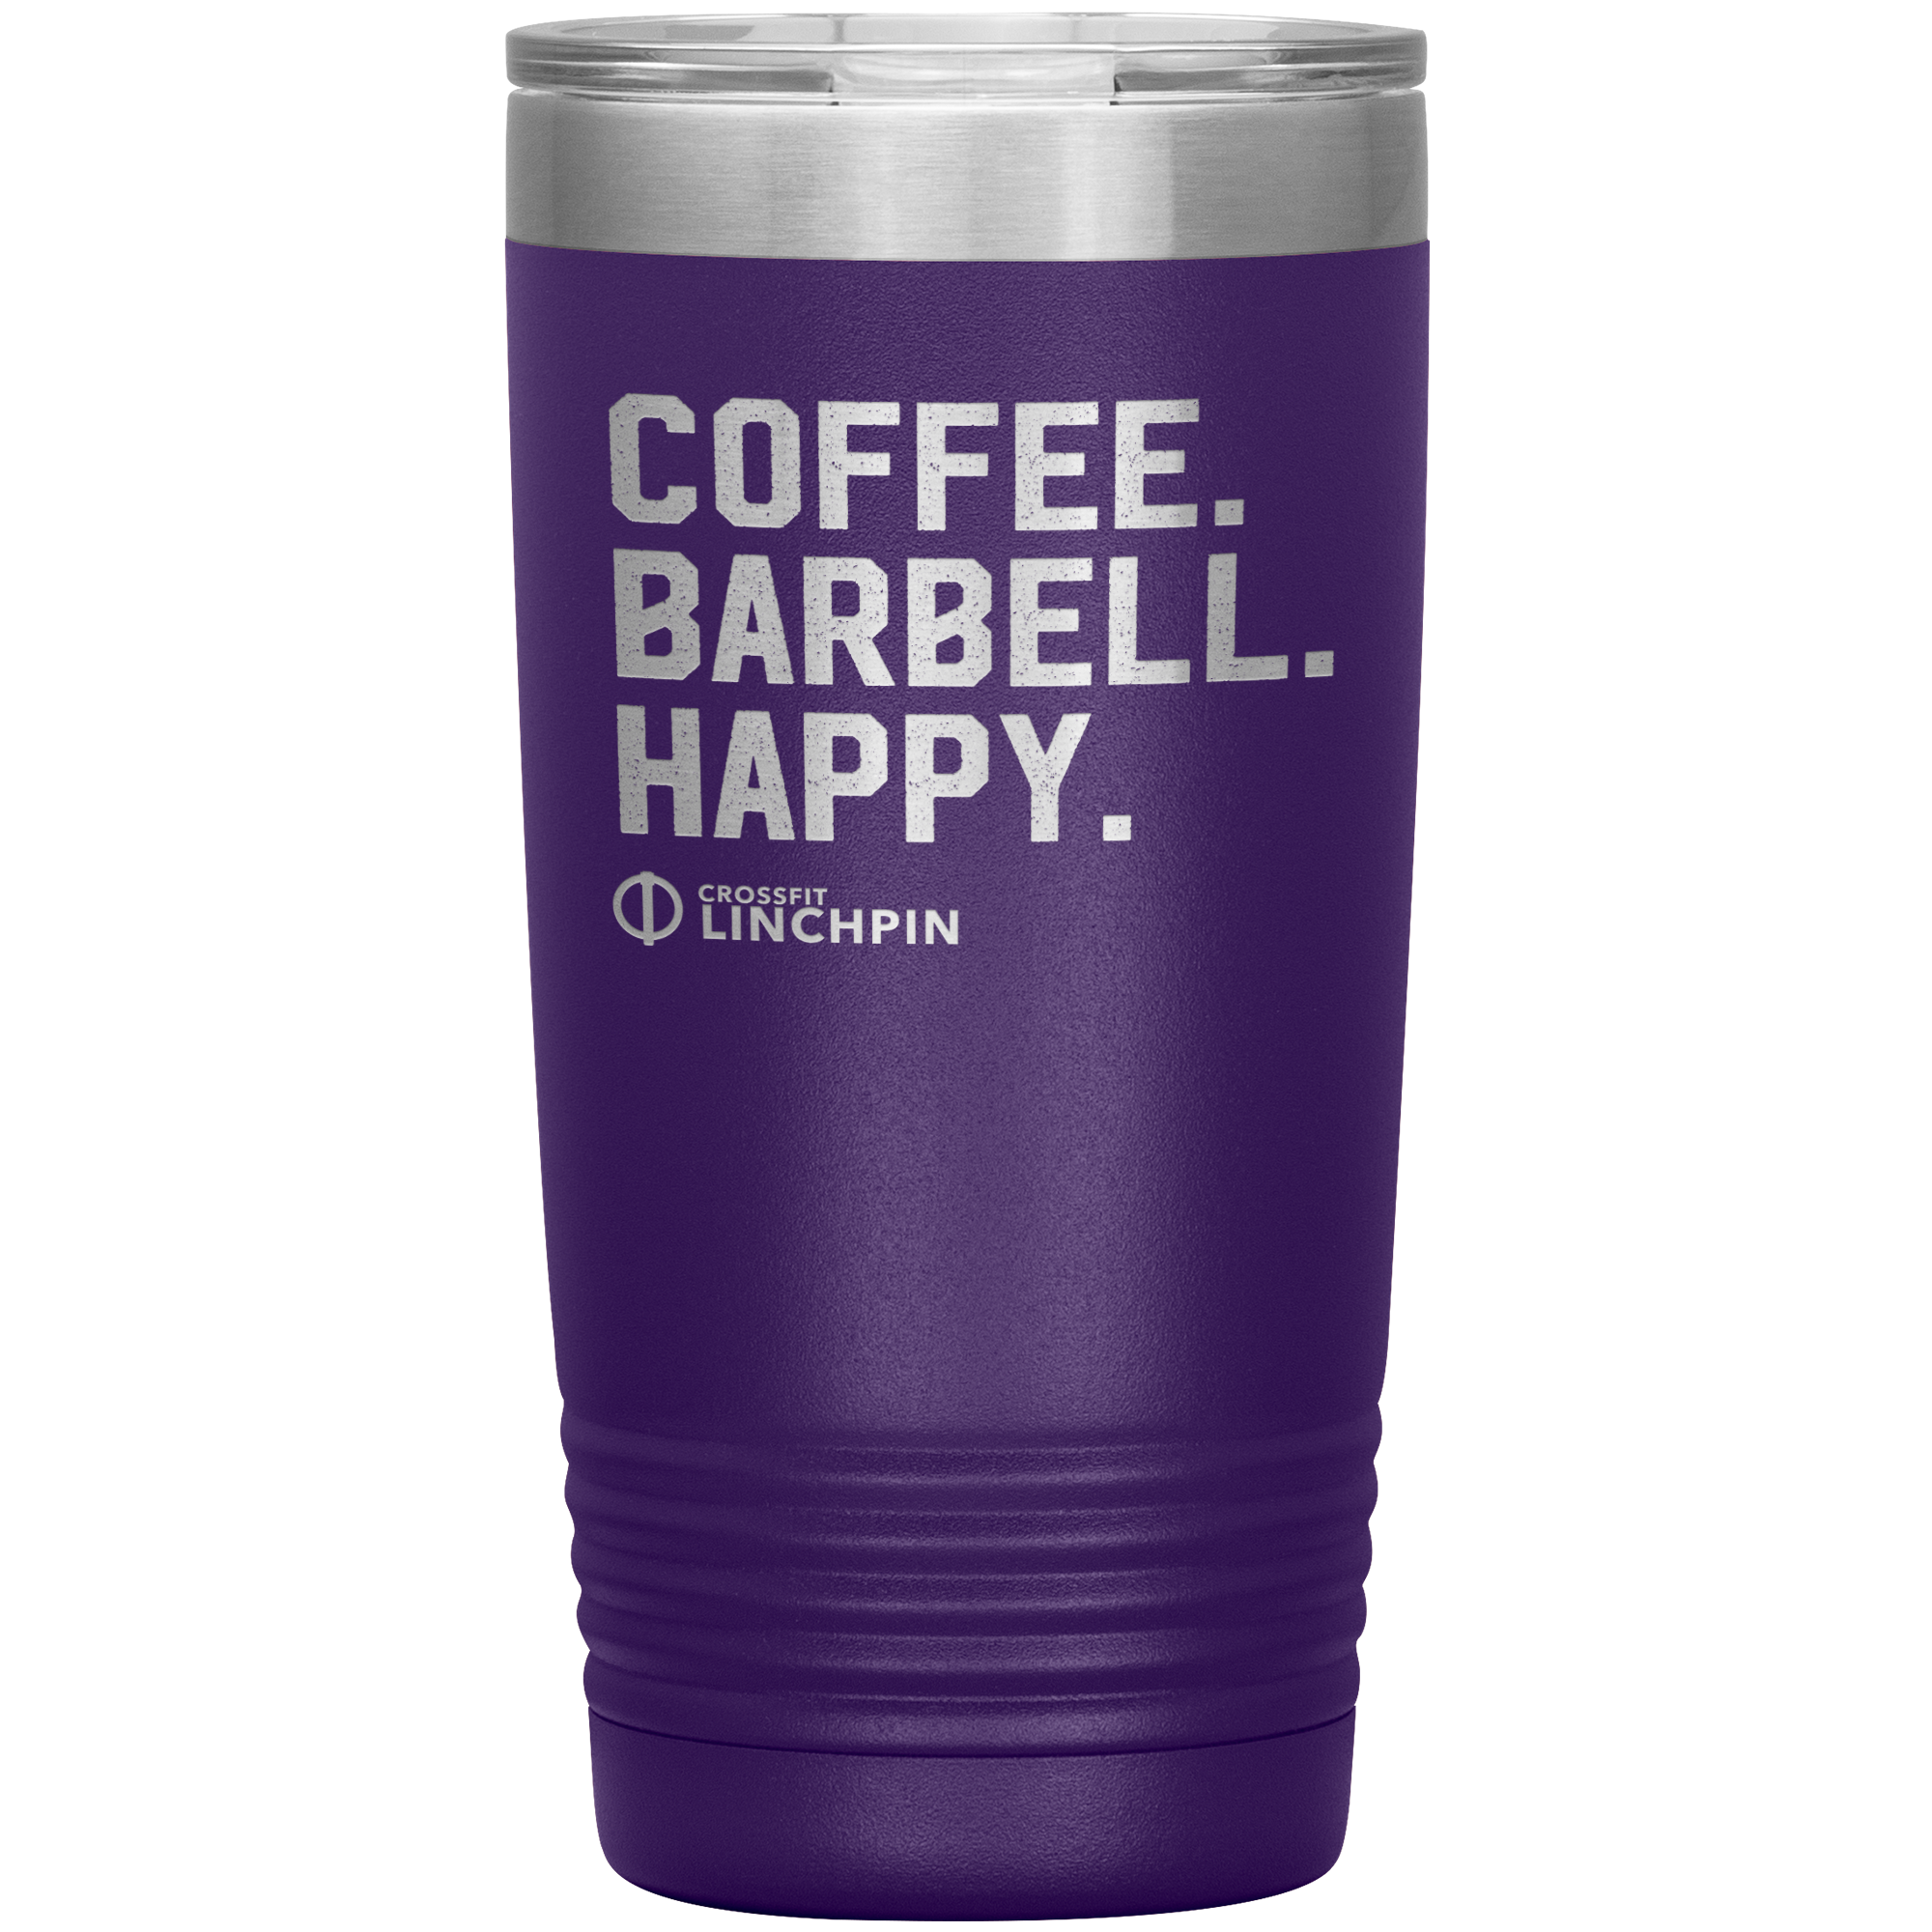 Coffee. Barbell. Happy. - 20oz Tumbler